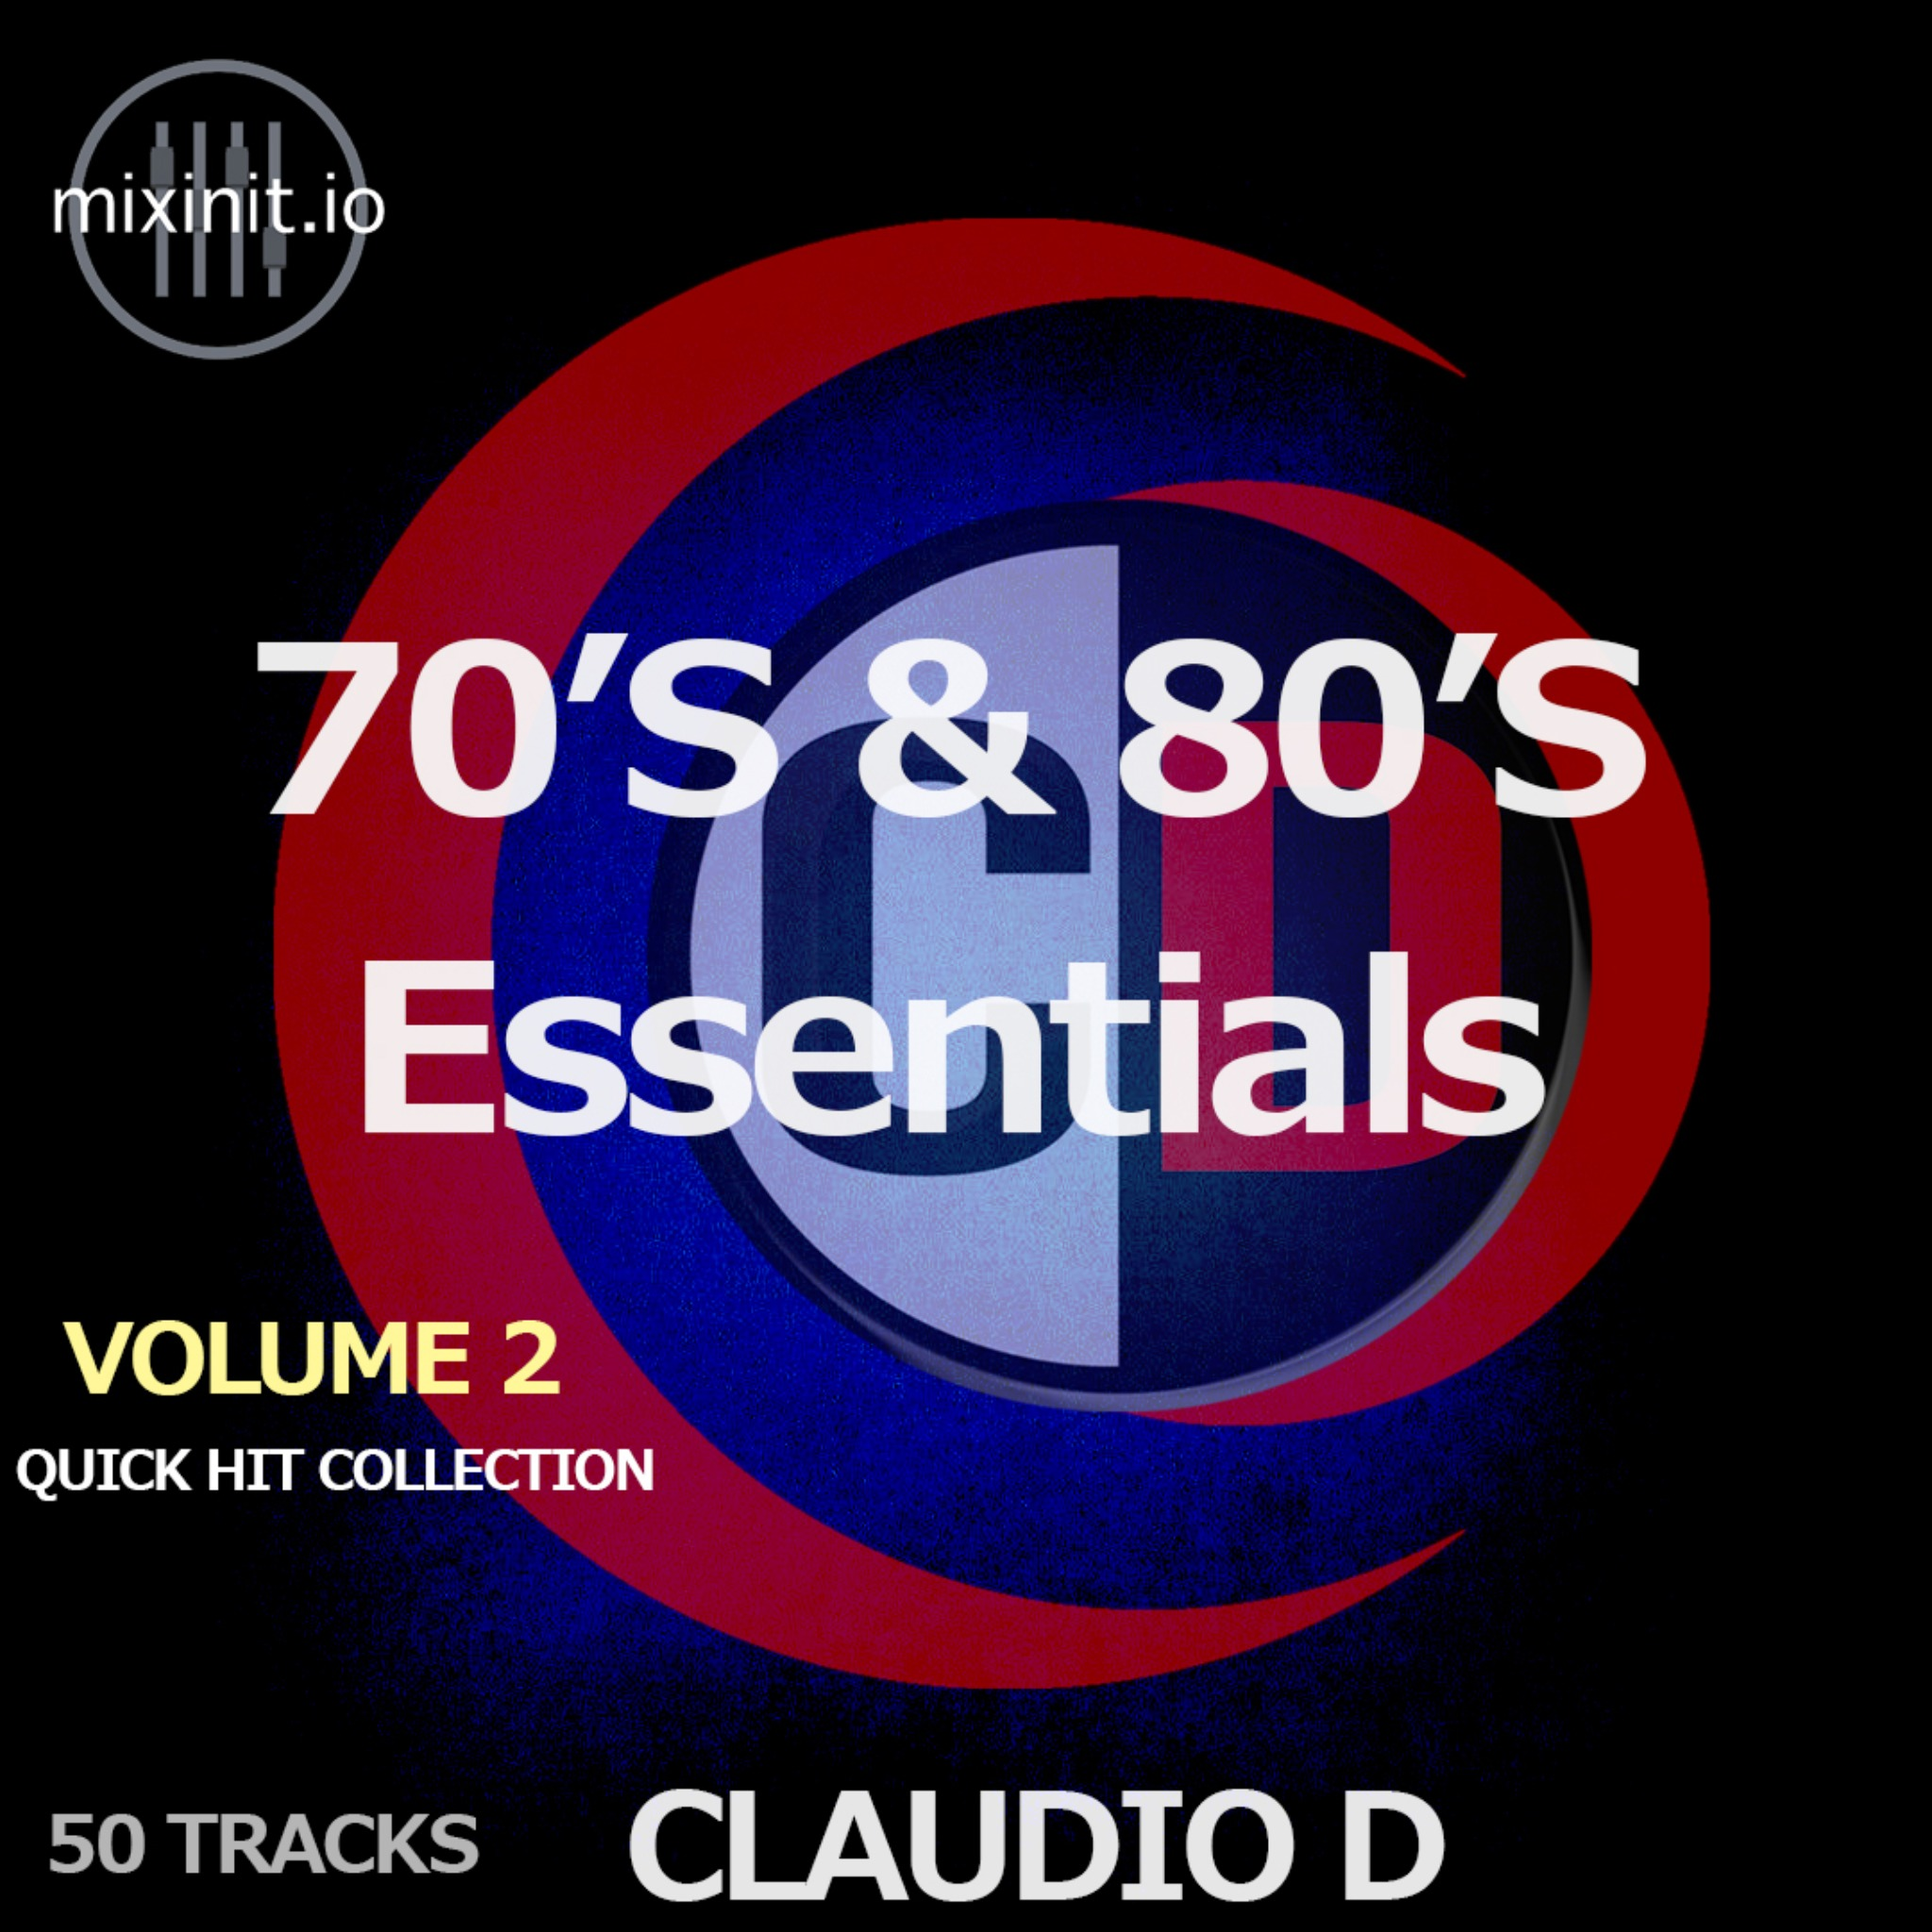 Claudio D - 70's & 80's Essentials Vol. 2 (Quick Hits 50 Pack)